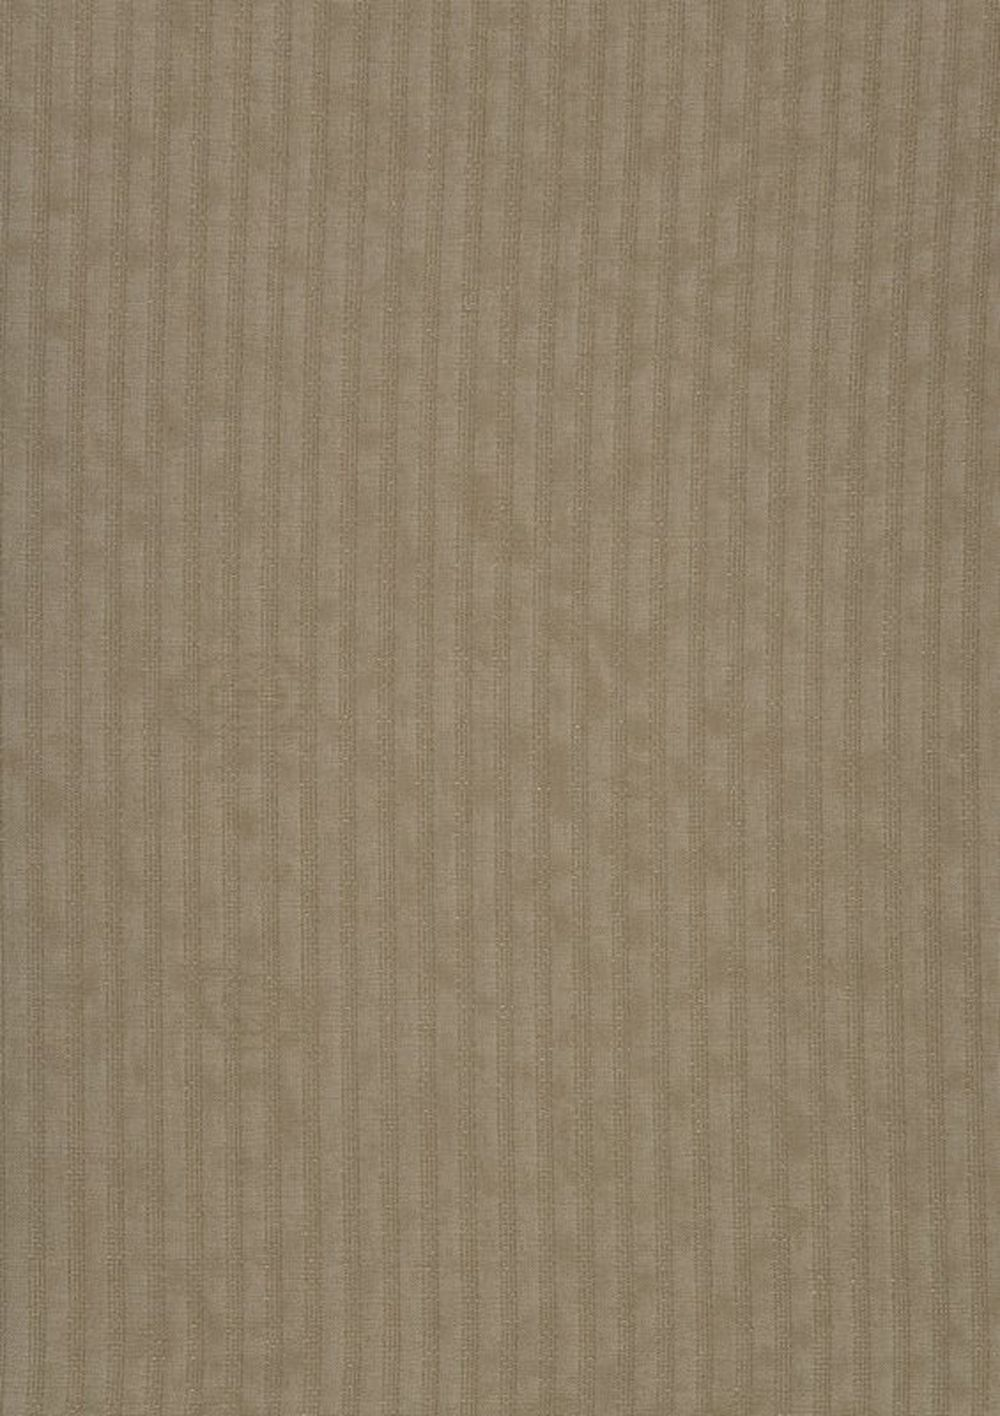 Photo of the fabric Crystal FR-One Taupe swatch by FR-One. Use for Curtains, Accessory. Style of Pattern, Stripe